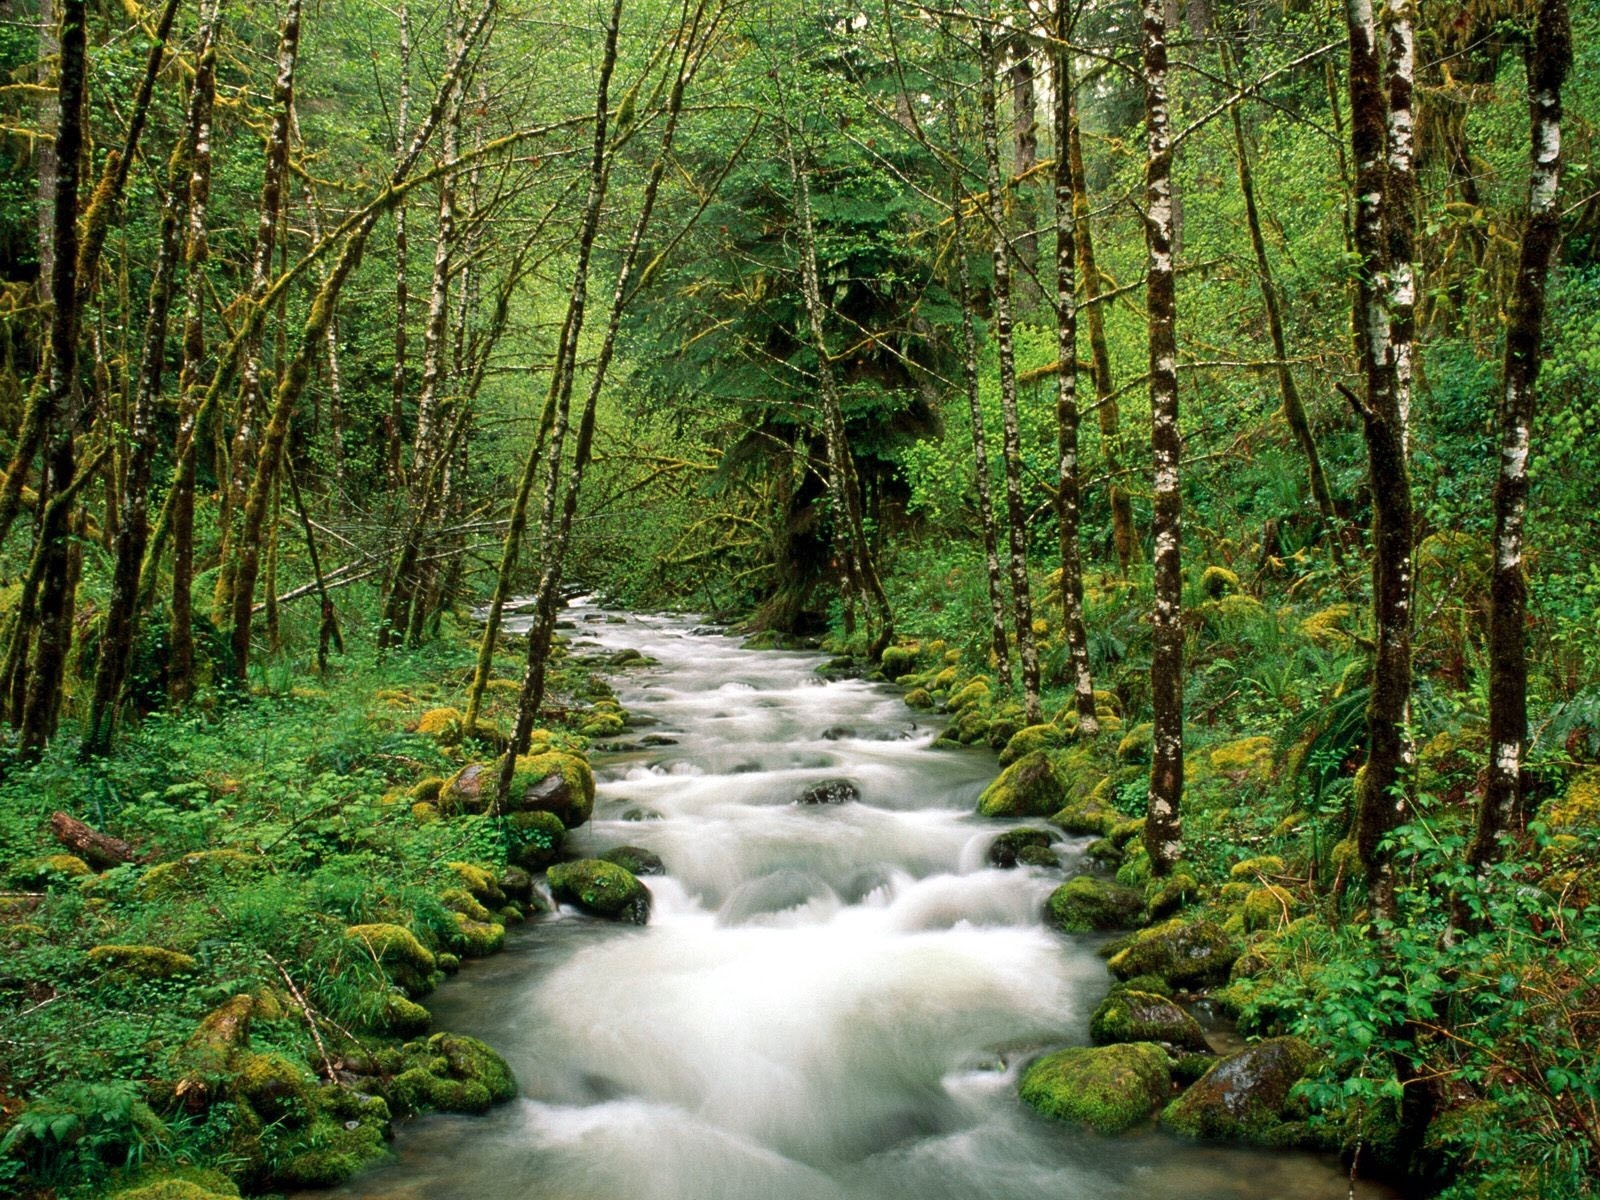 Download wallpaper 1600x1200 mountain river, trees, wood, green ...